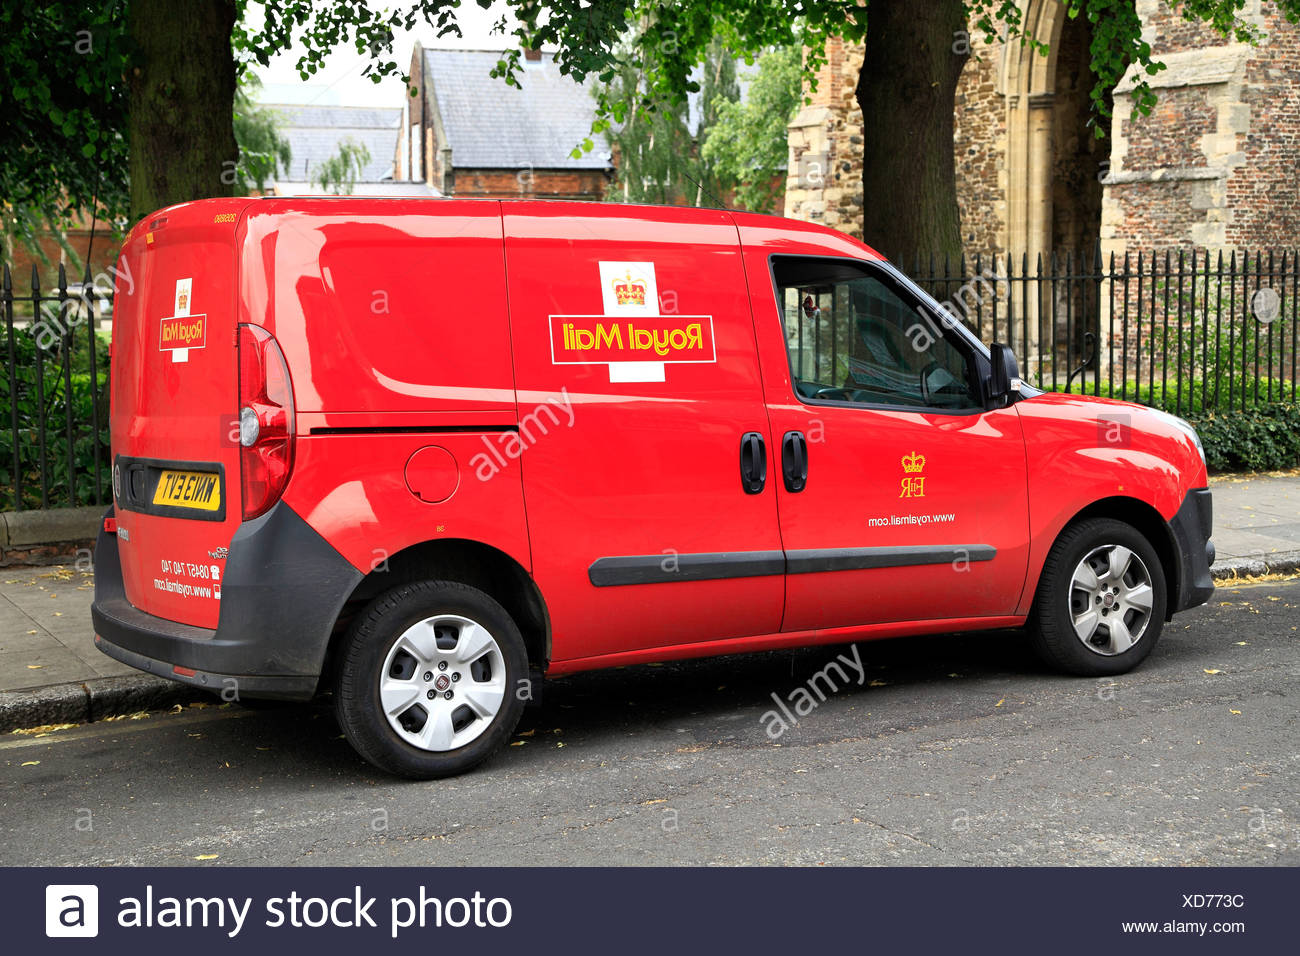 Royal Mail van, vehicle, England, UK, vehicles vans transport - Stock Image